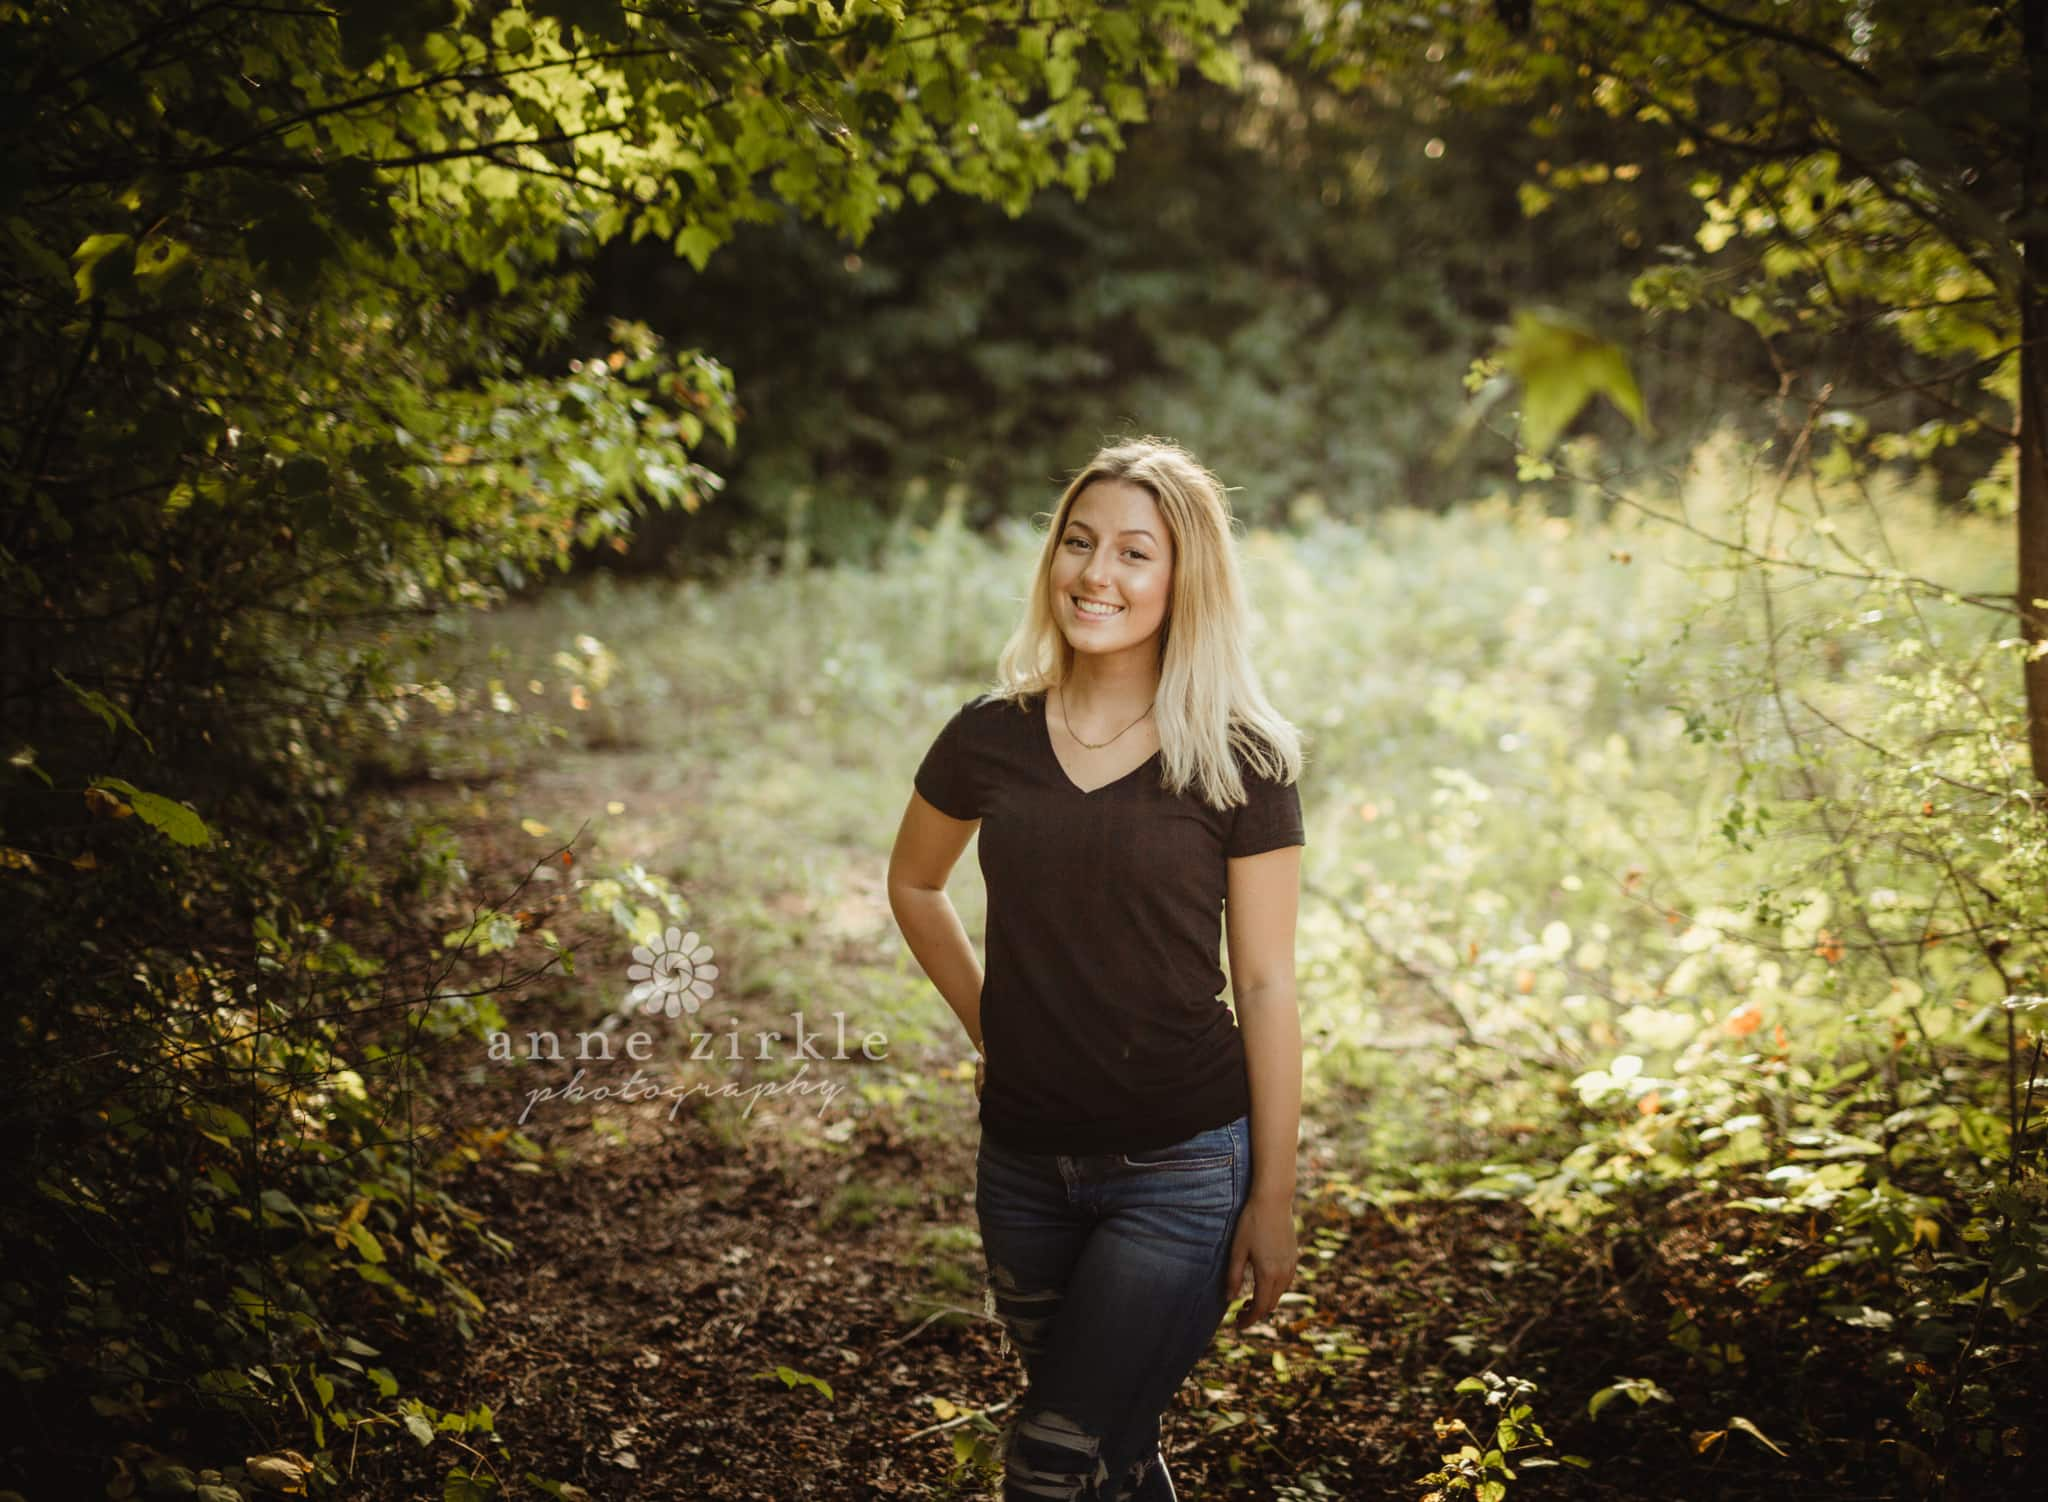 senior girl standing in wooded area #mooresville #northcarolina #davidson #lakenorman #southiredell #pinelakeprep #highschool #highschoolsenior #highschoolseniors #seniors